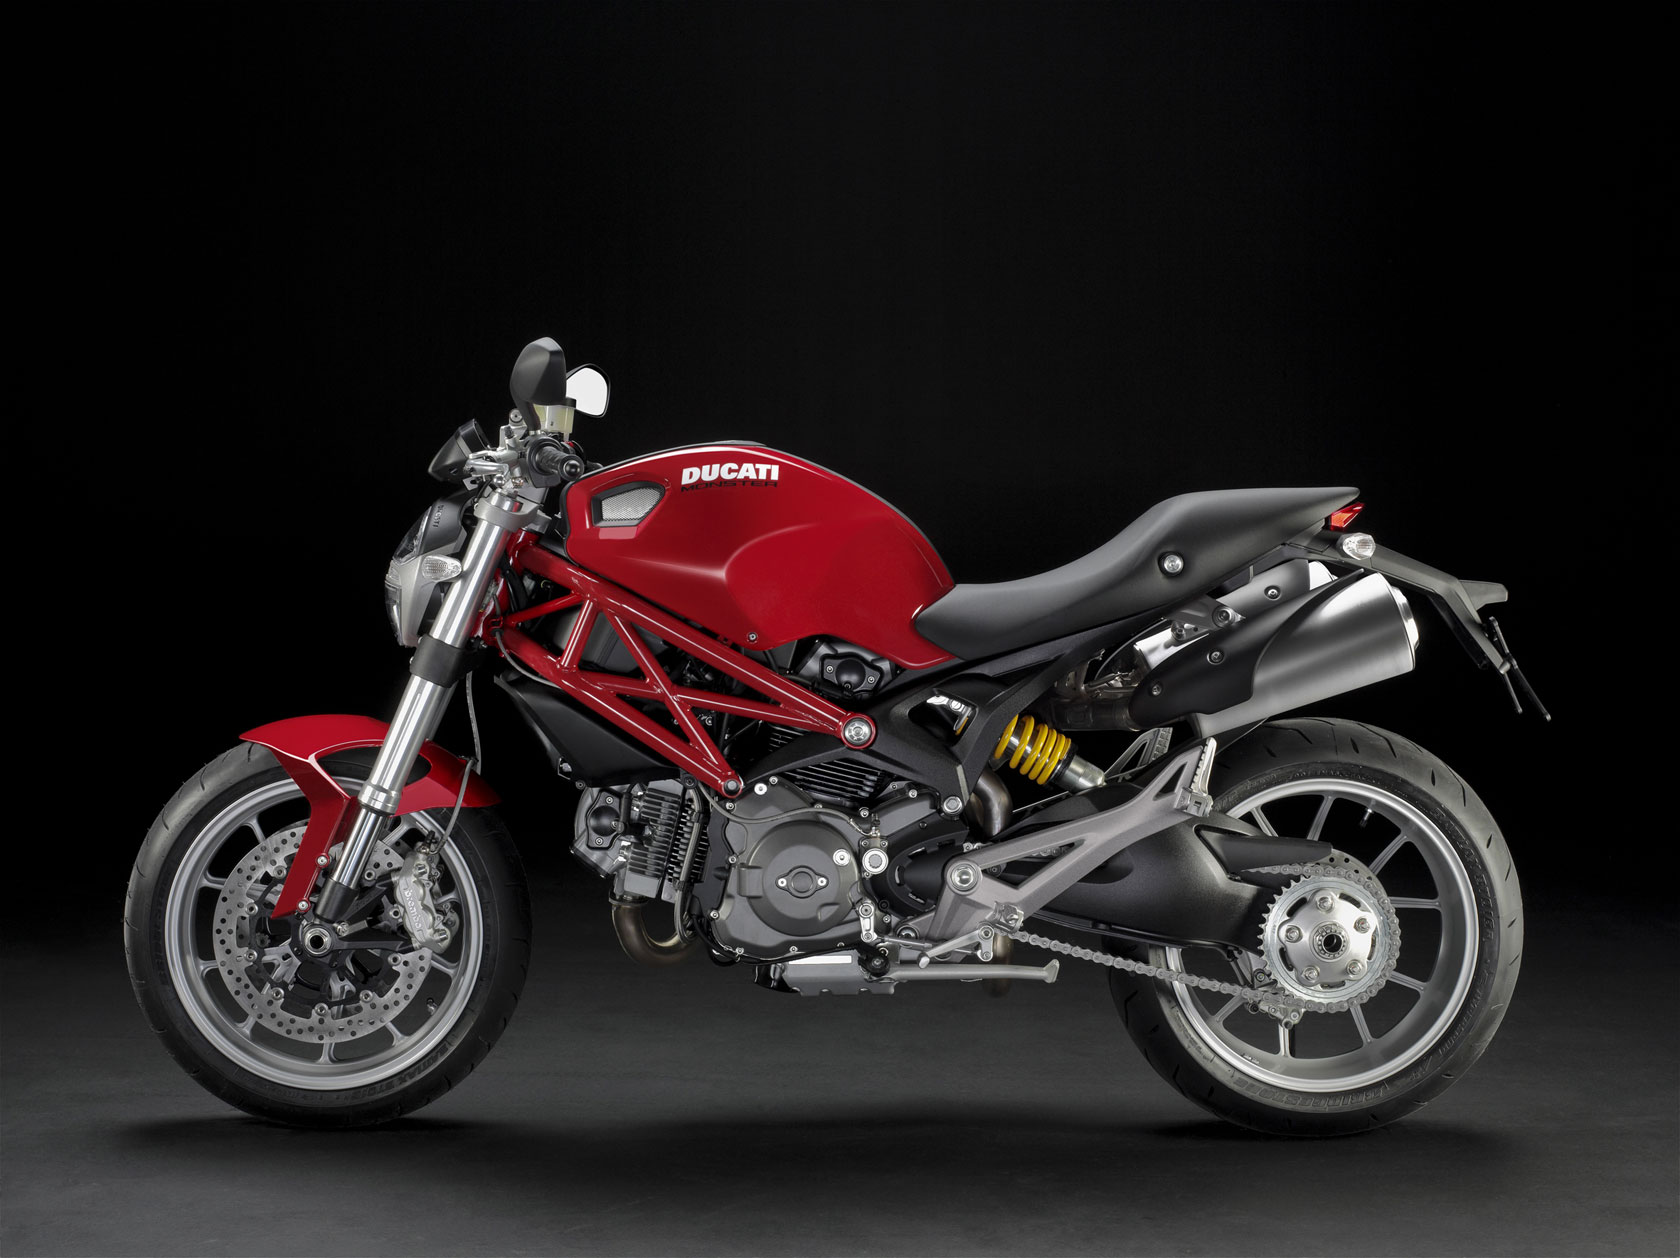 Ducati Monster 1100 S 2010 images #79342